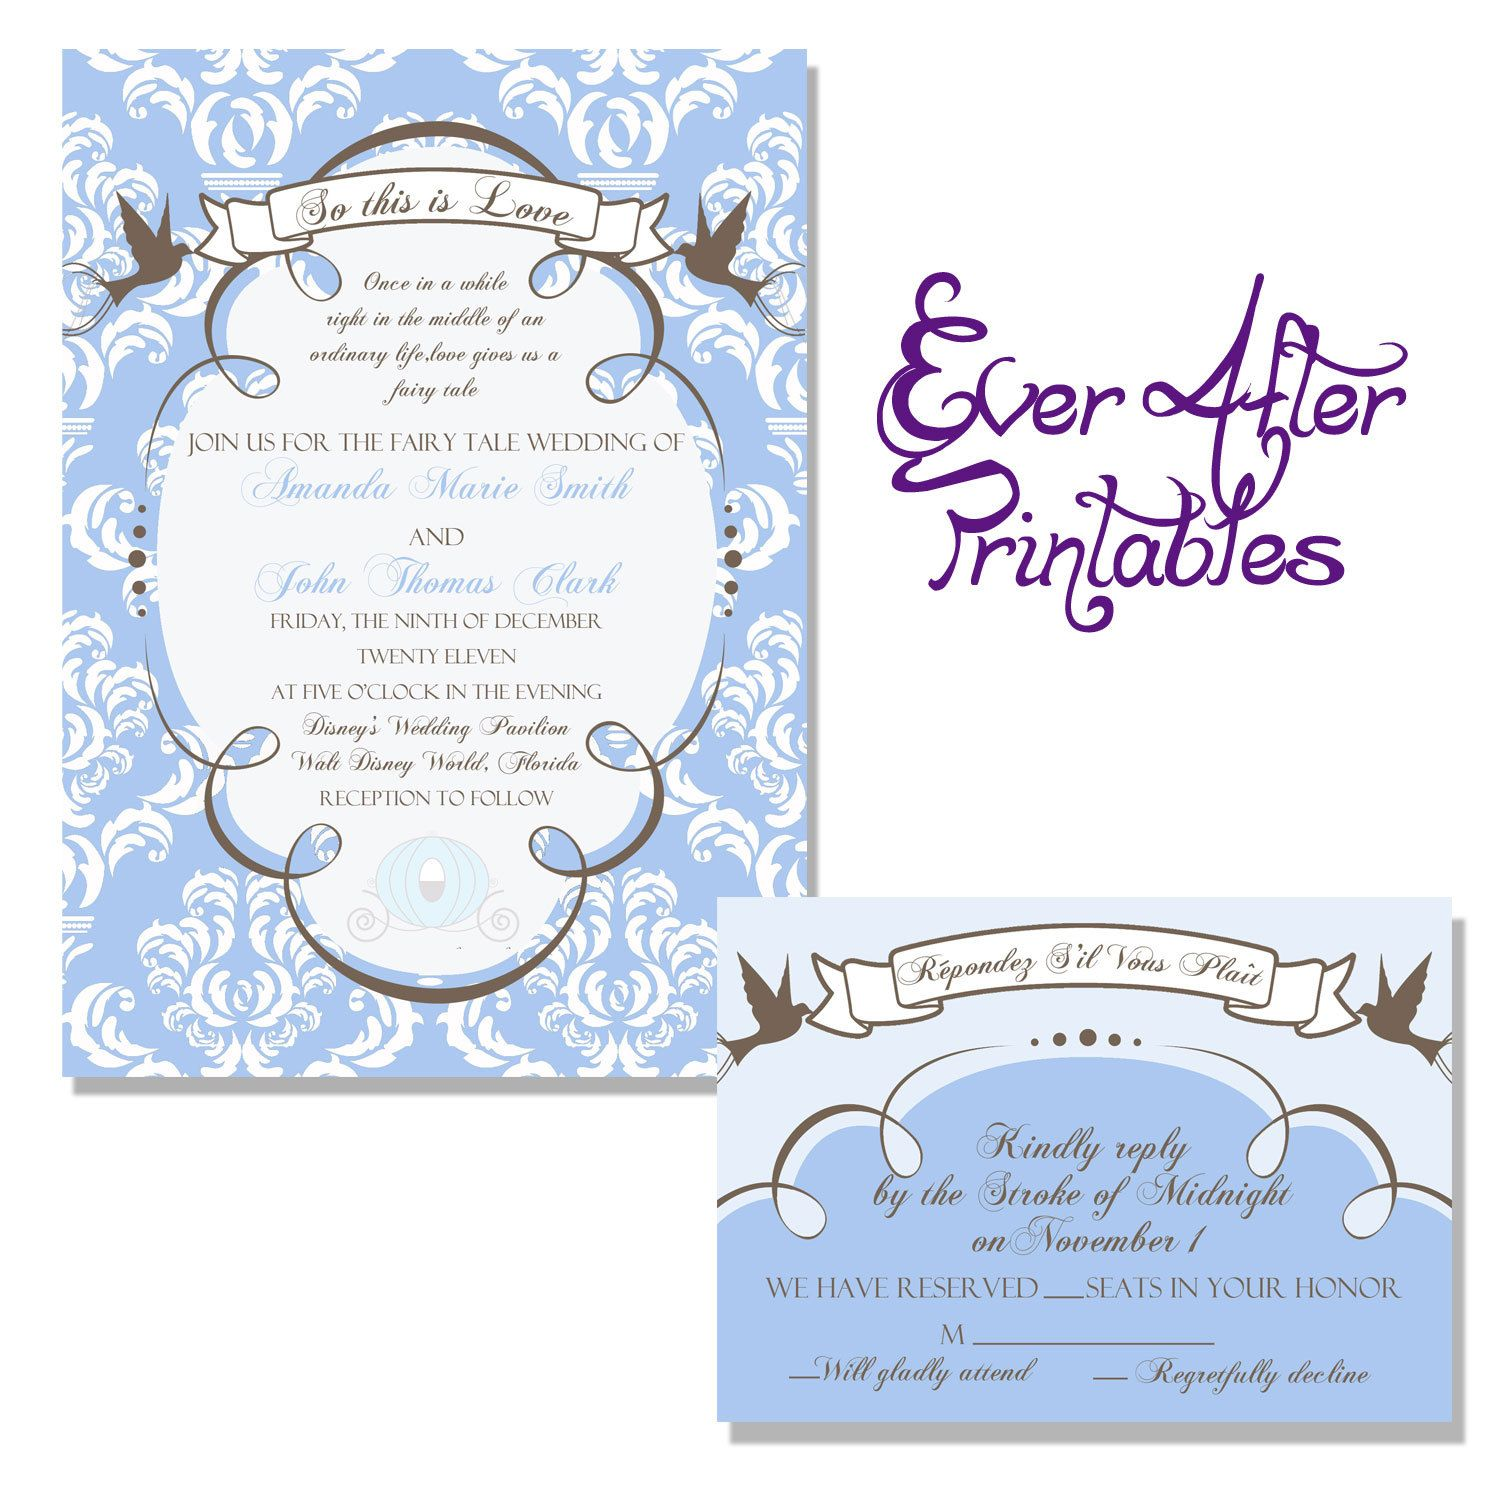 Disney Wedding Invitation: Also Love This Disney Invitation! Disney's Cinderella